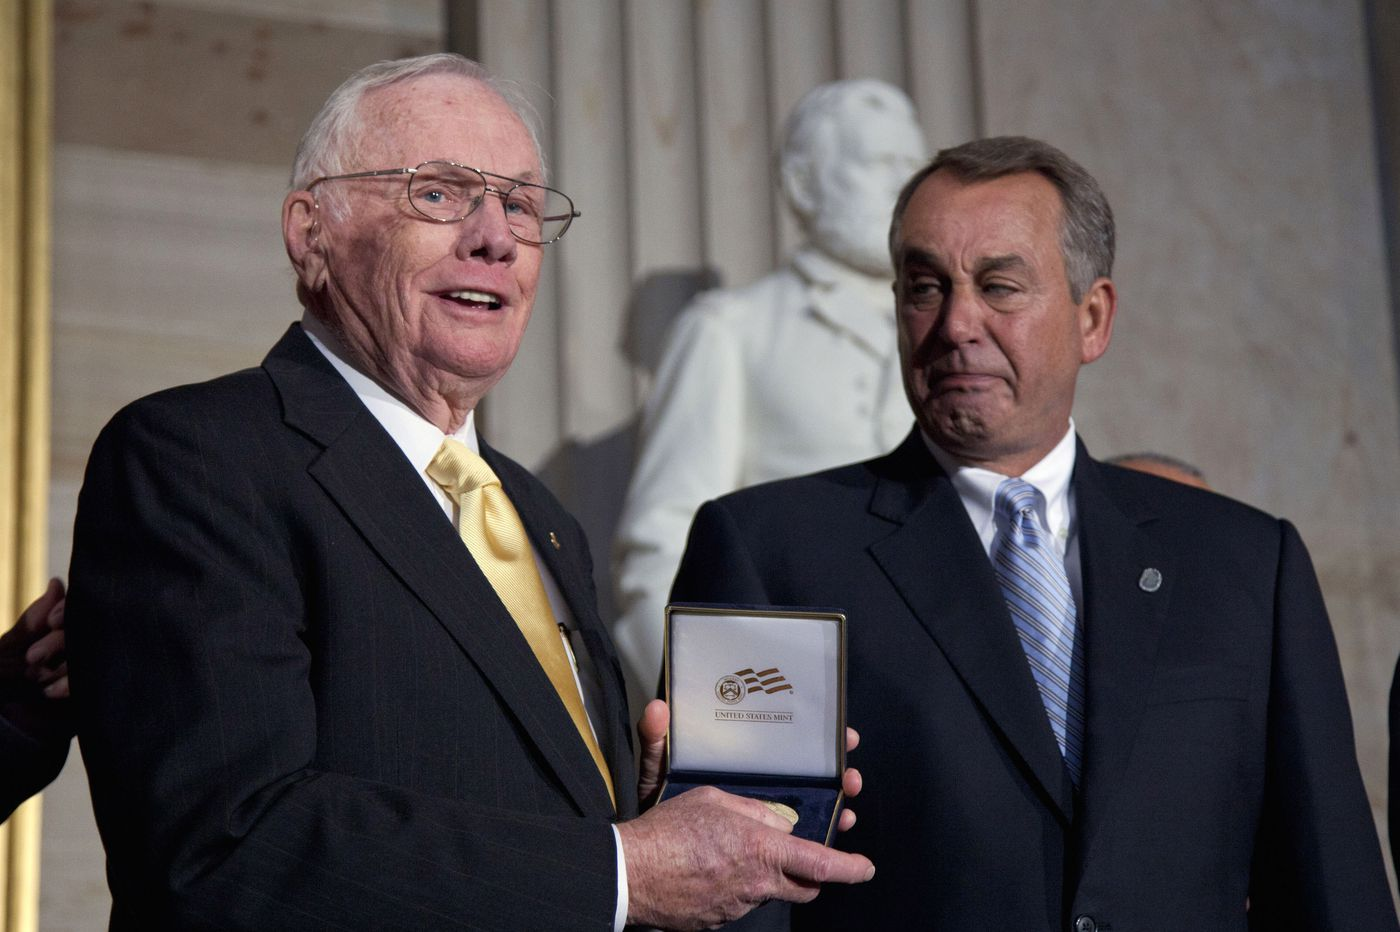 Neil Armstrong's heart-surgery death led to $6 million settlement; Penn doctor faulted care